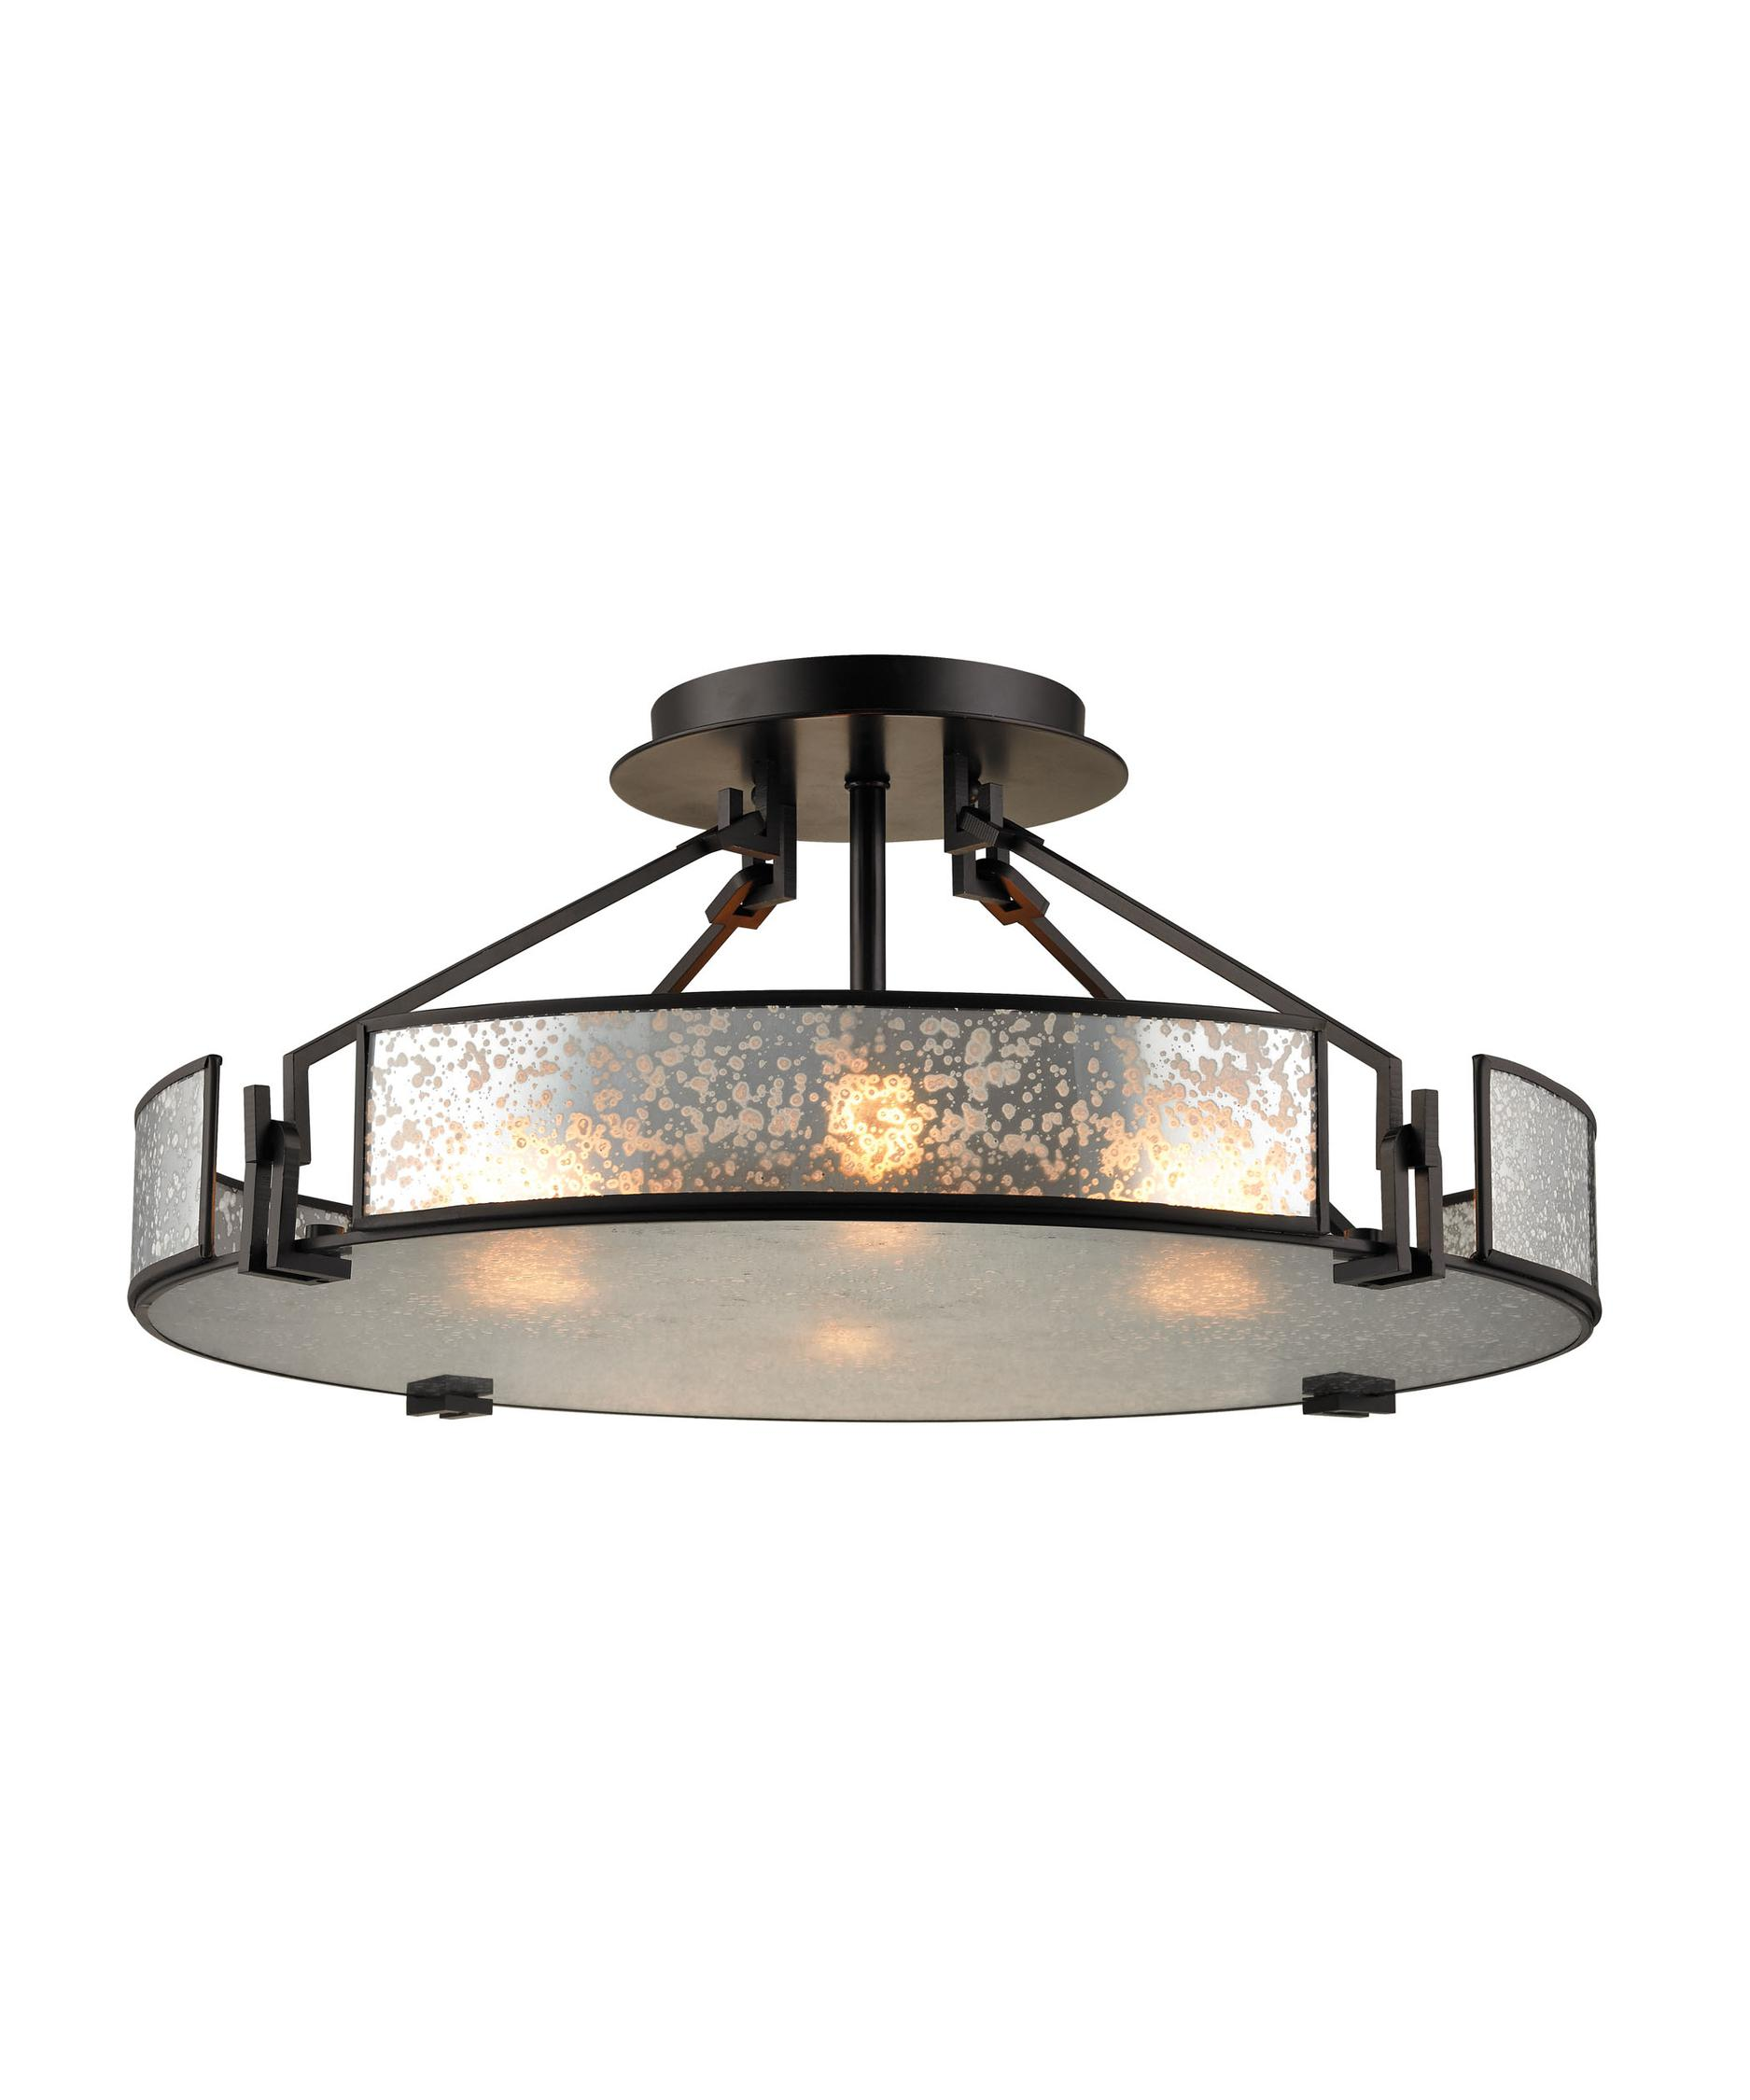 elk lighting 57091-4 lindhurst 21 inch wide semi flush mount